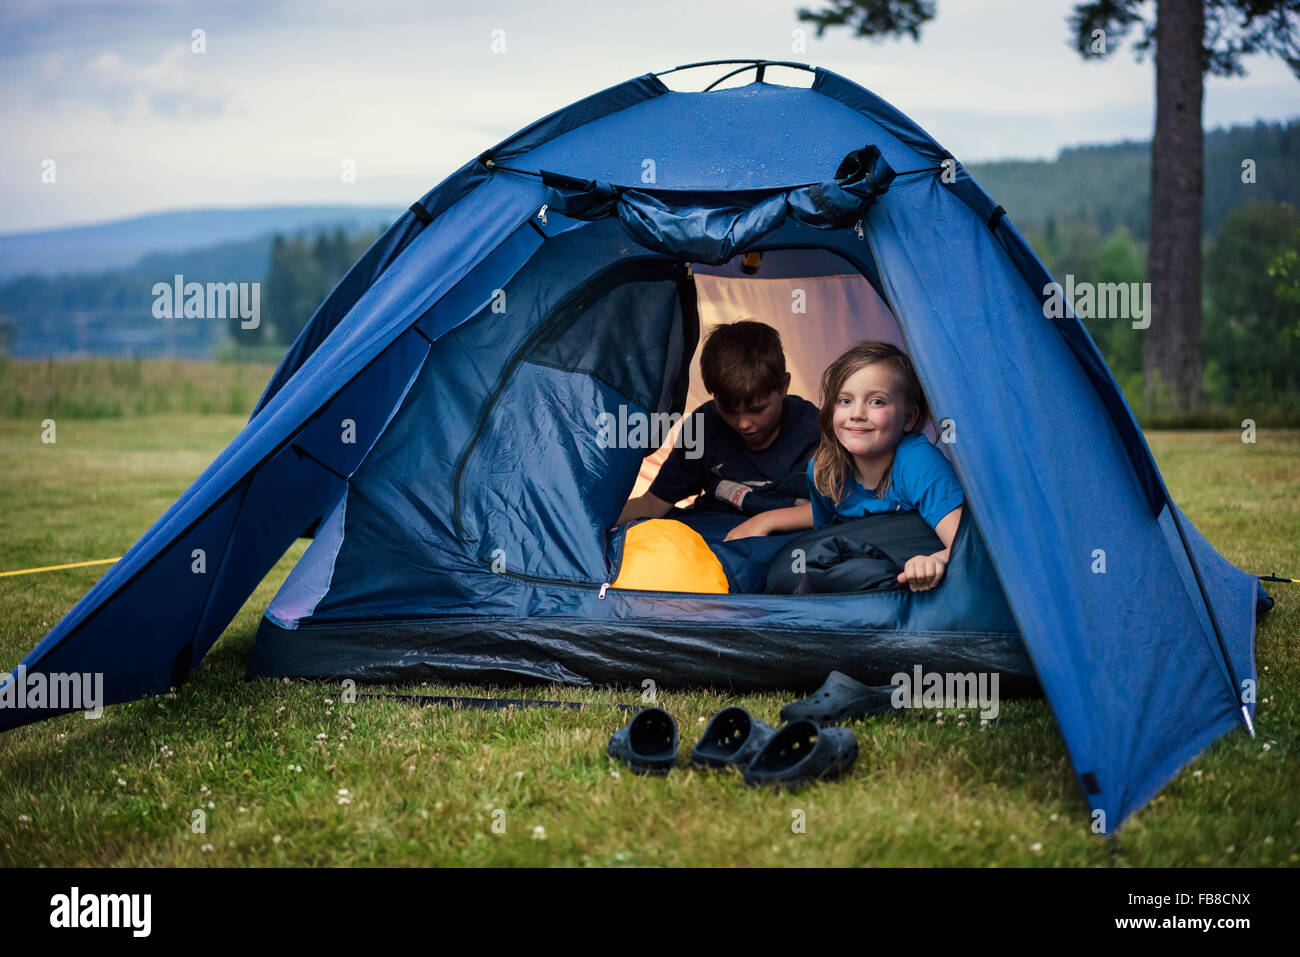 Sweden, Dalarna, Salen, Children (8-9, 10-11) in tent in meadow - Stock Image